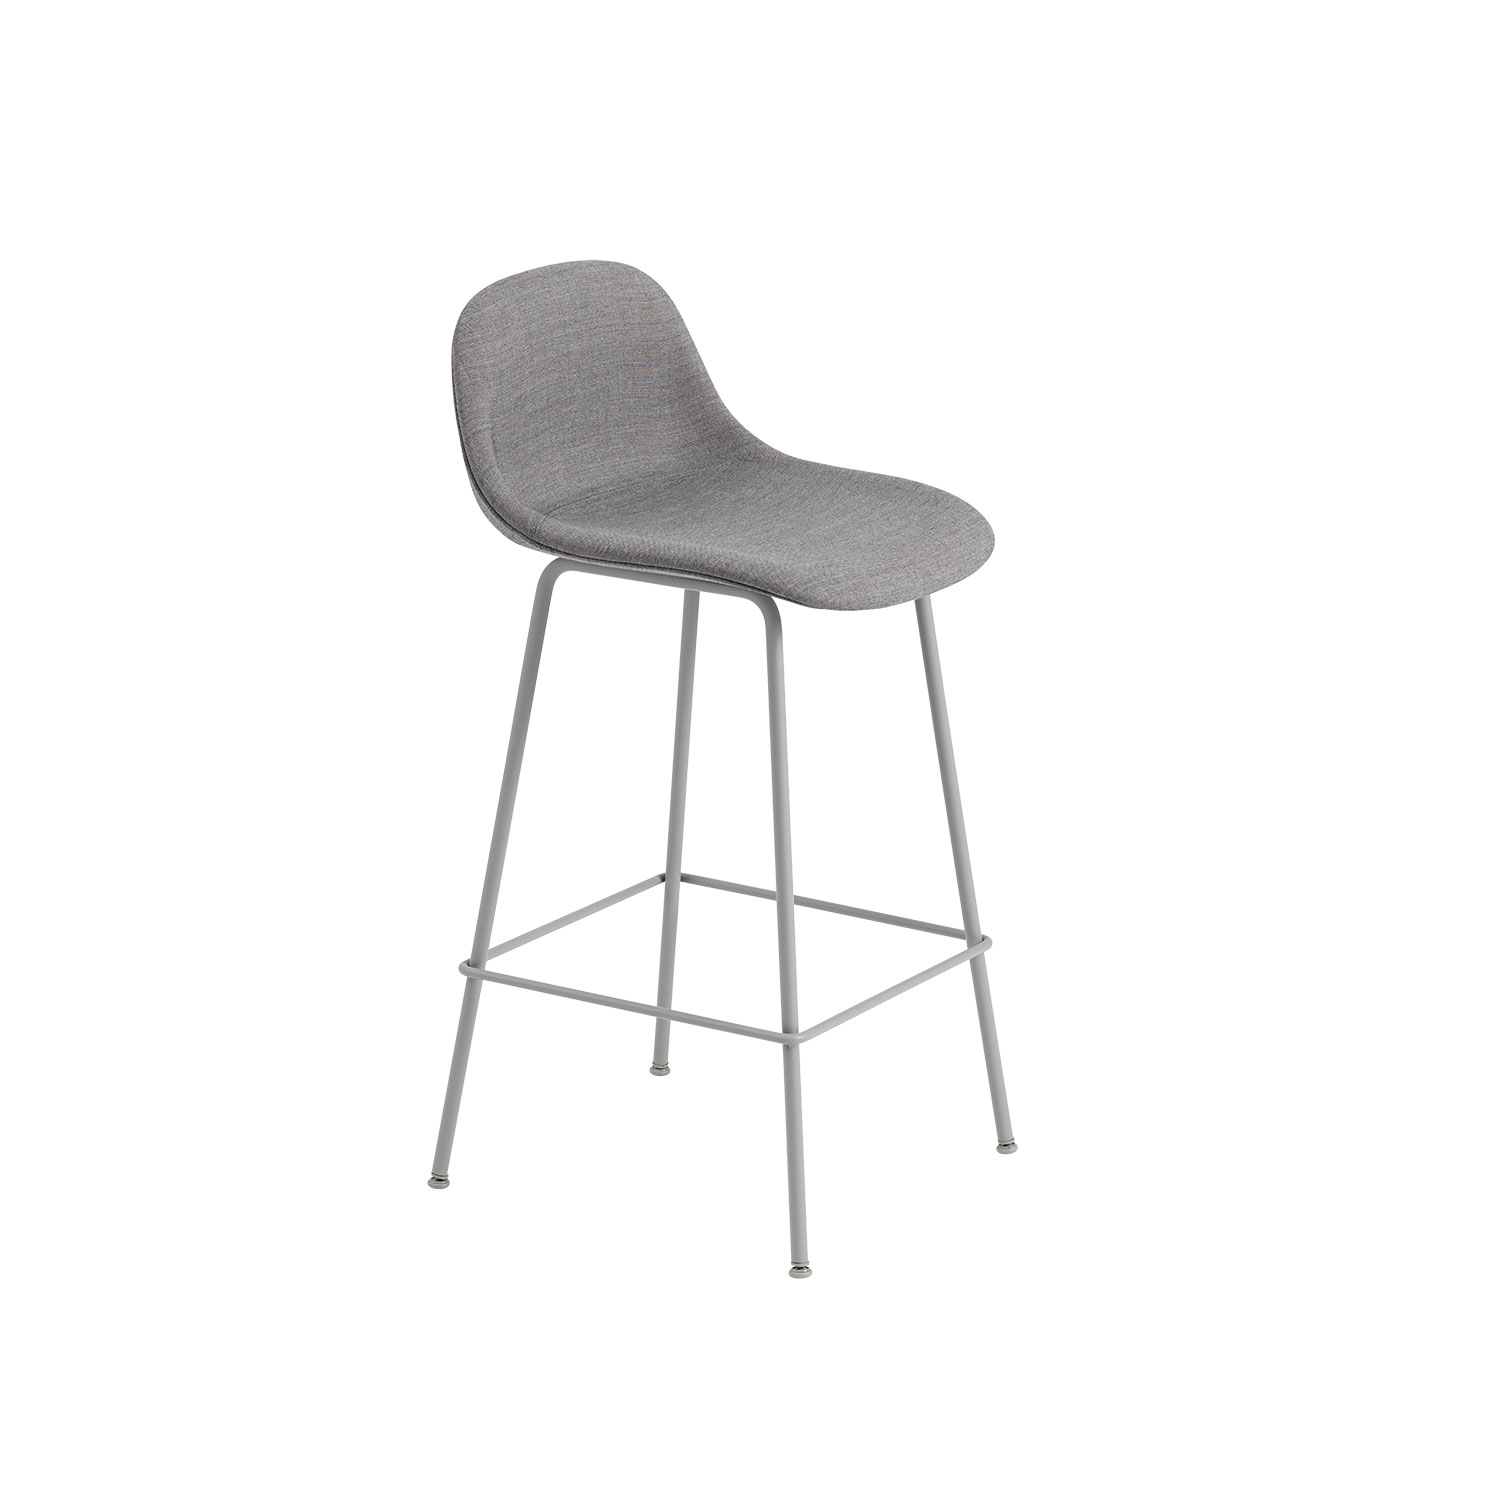 Fiber Tube bar stool w.back, grå/remix133